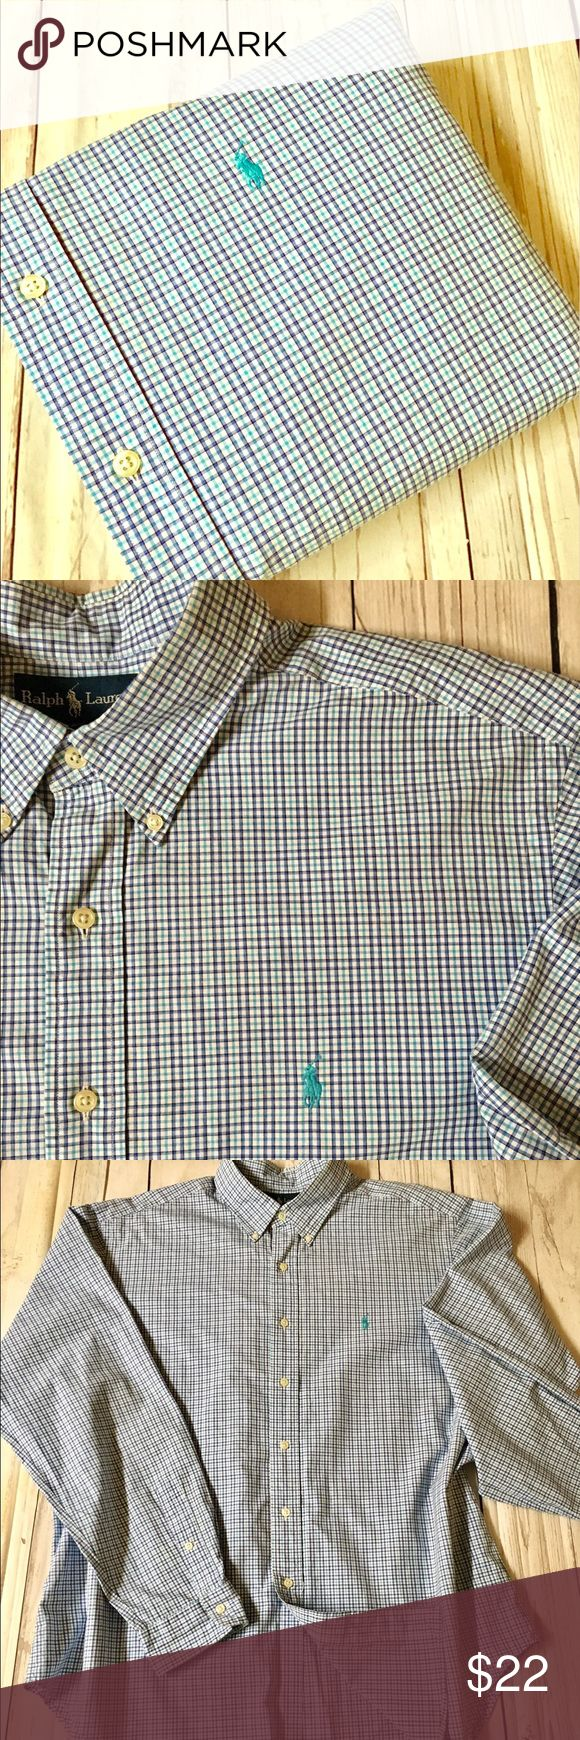 """🐎B1G1 HALF OFF🐎POLO•Ralph•Lauren•XXL•Shirt• 🎈BOGO HALF OFF SALE🎈ENTIRE CLOSET🎈BUY 1 item, & receive 2nd item, of equal or lesser value, for half off. 🎈Contact me to make custom bundle, or bundle yourself & send me the sale price as bundle offer🎈men's  long sleeve button front 100% cotton oxford shirt•XXL CLASSIC FIT per tag•Signature pony at chest•GUC• Chest: 28.5"""" Length: 32"""" Sleeve: 36"""" Shoulder: 21"""" Polo by Ralph Lauren Shirts Casual Button Down Shirts"""